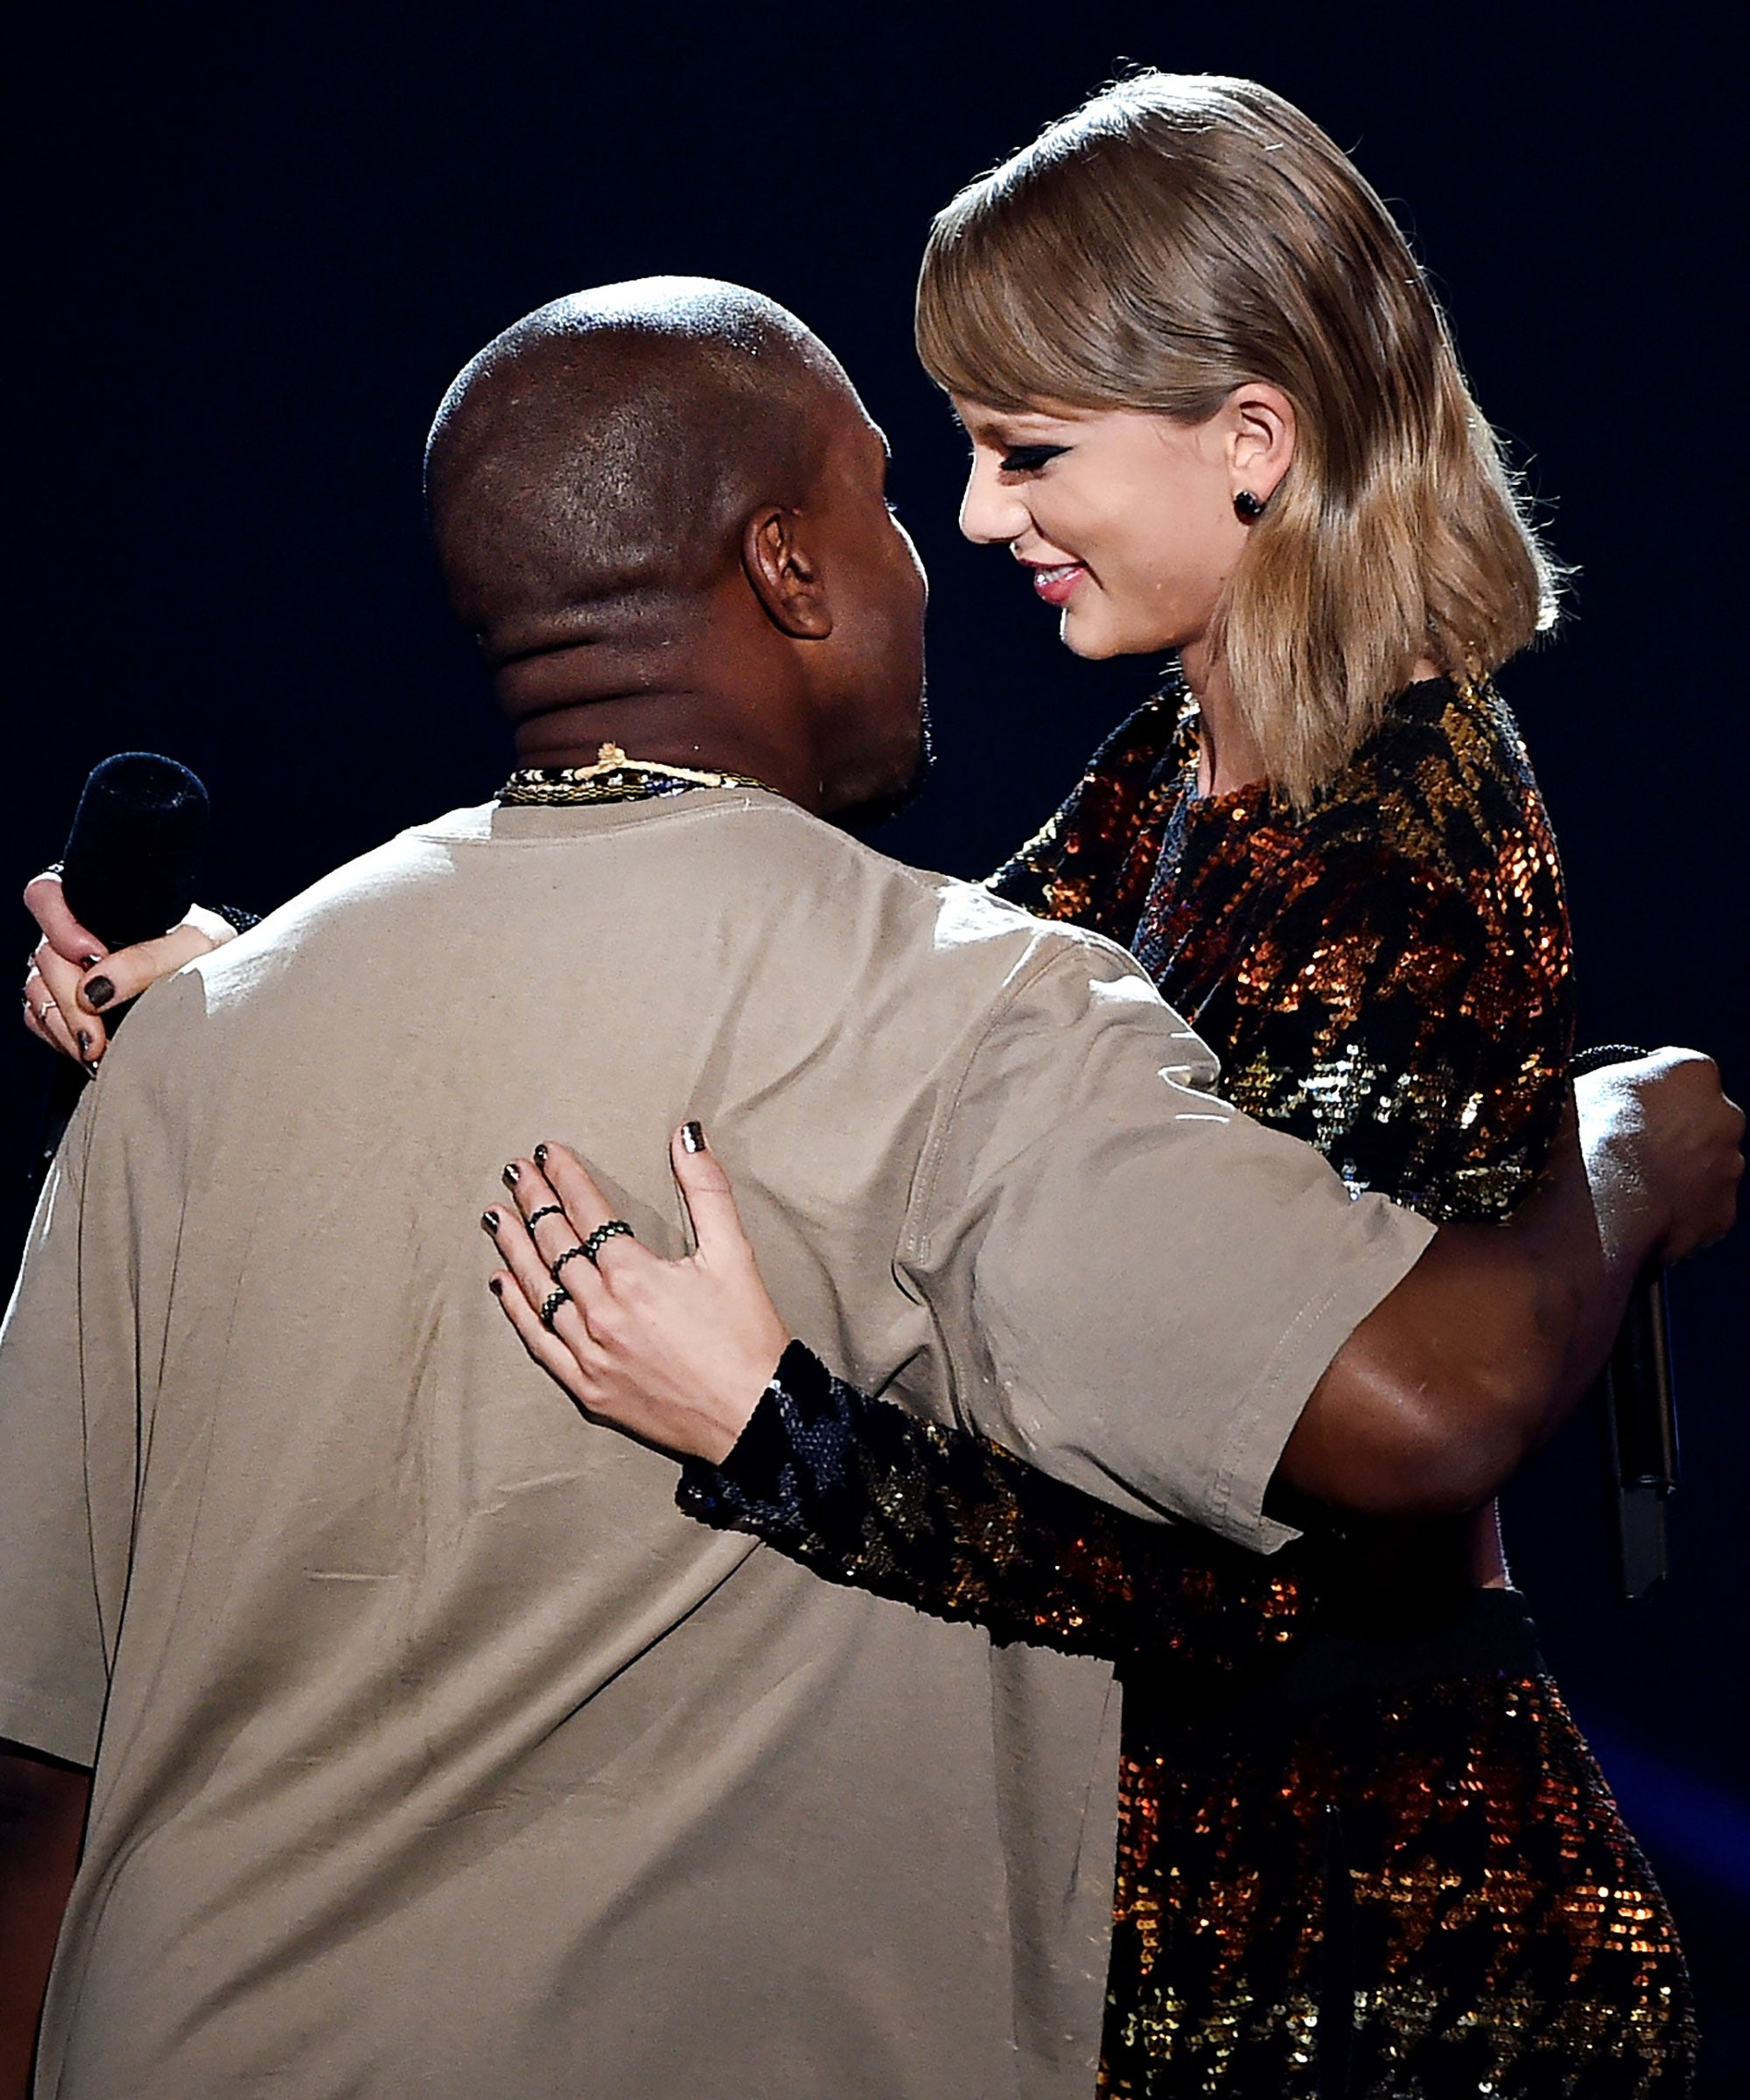 The Kanye West Phone Call To Taylor Swift Video Leaked